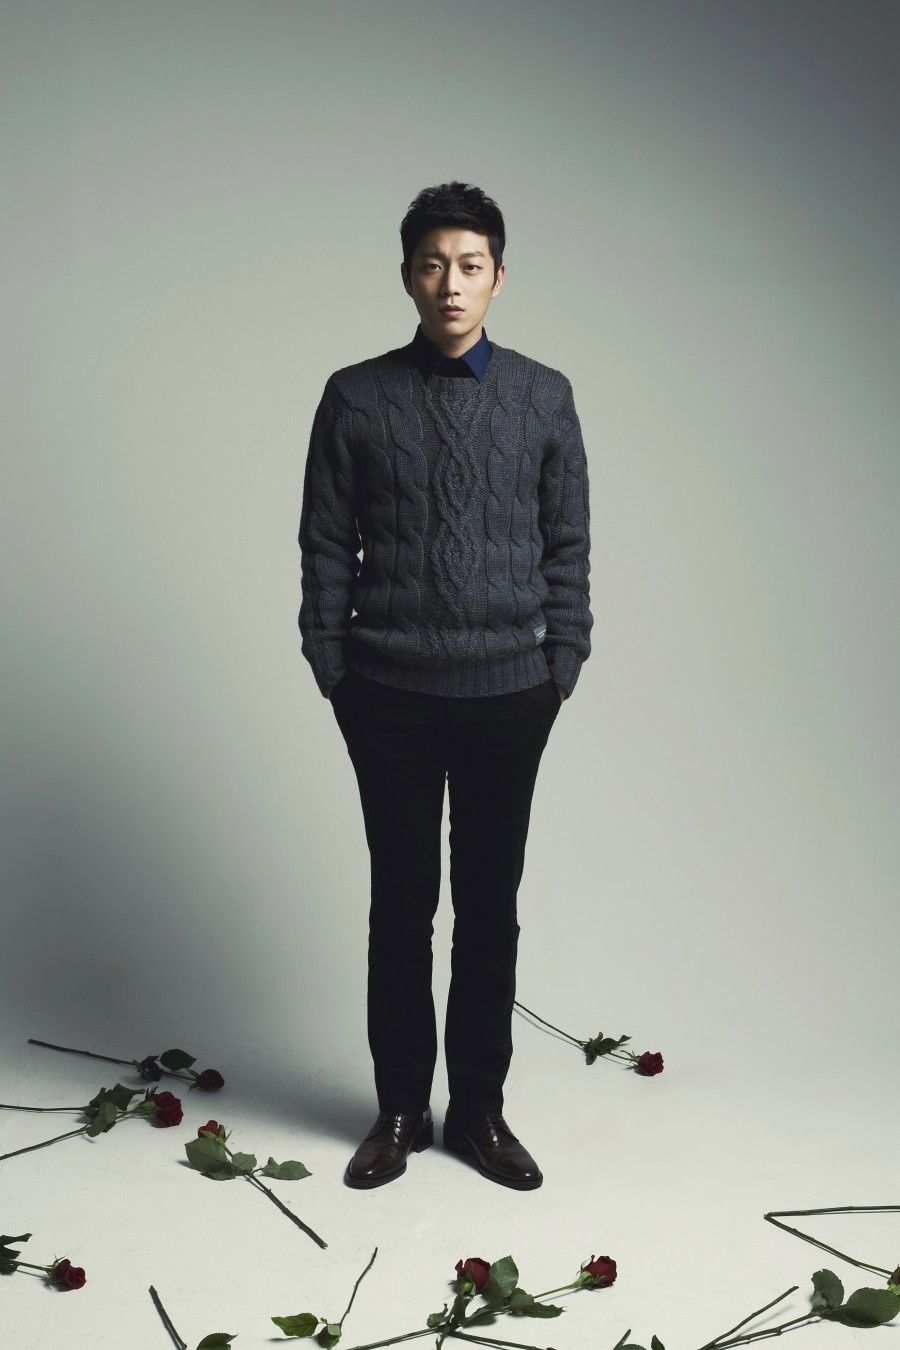 Yoon Du Jun Standing Between Flowers